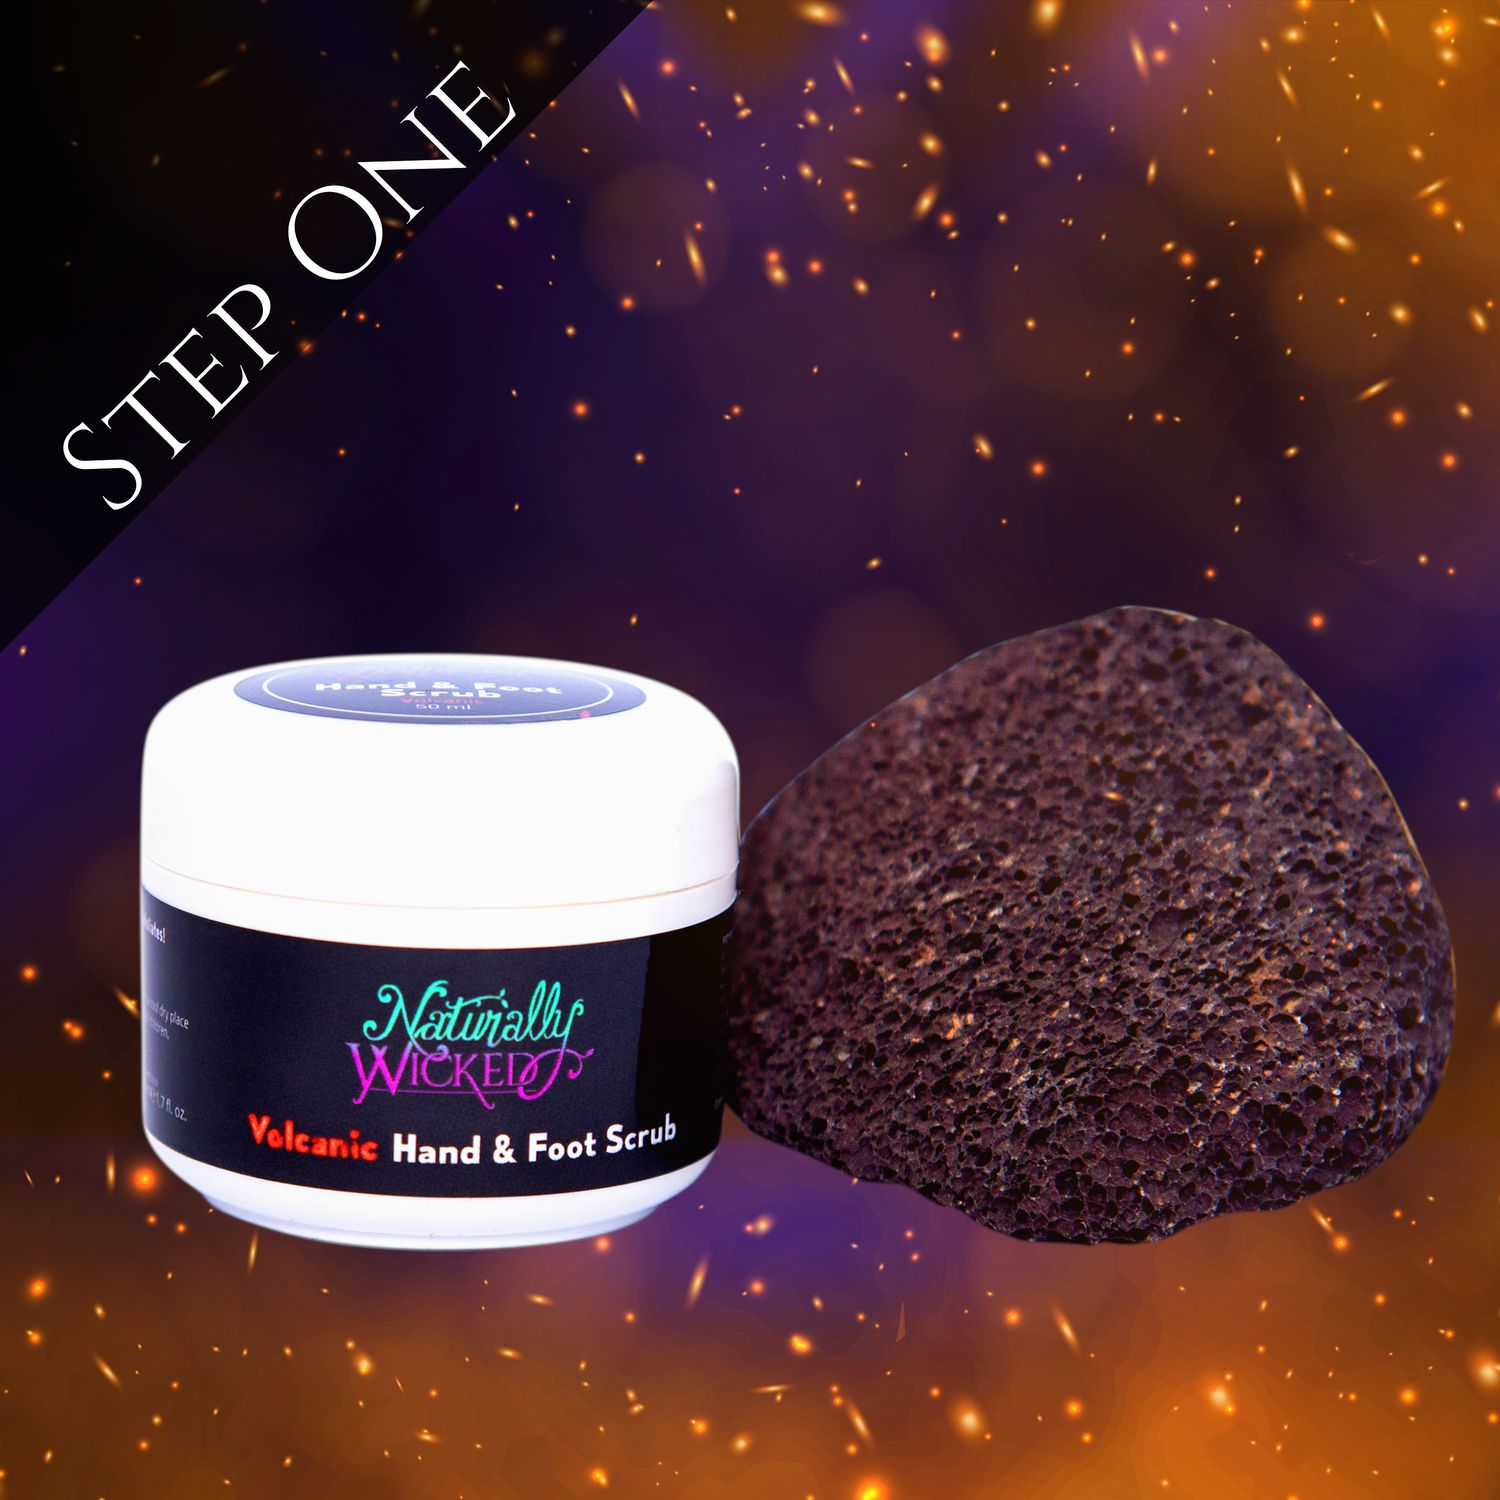 Naturally Wicked Exfoliating Volcanic Hand & Foot Scrub Surrounded By Black Burnt Grass  - Step 1